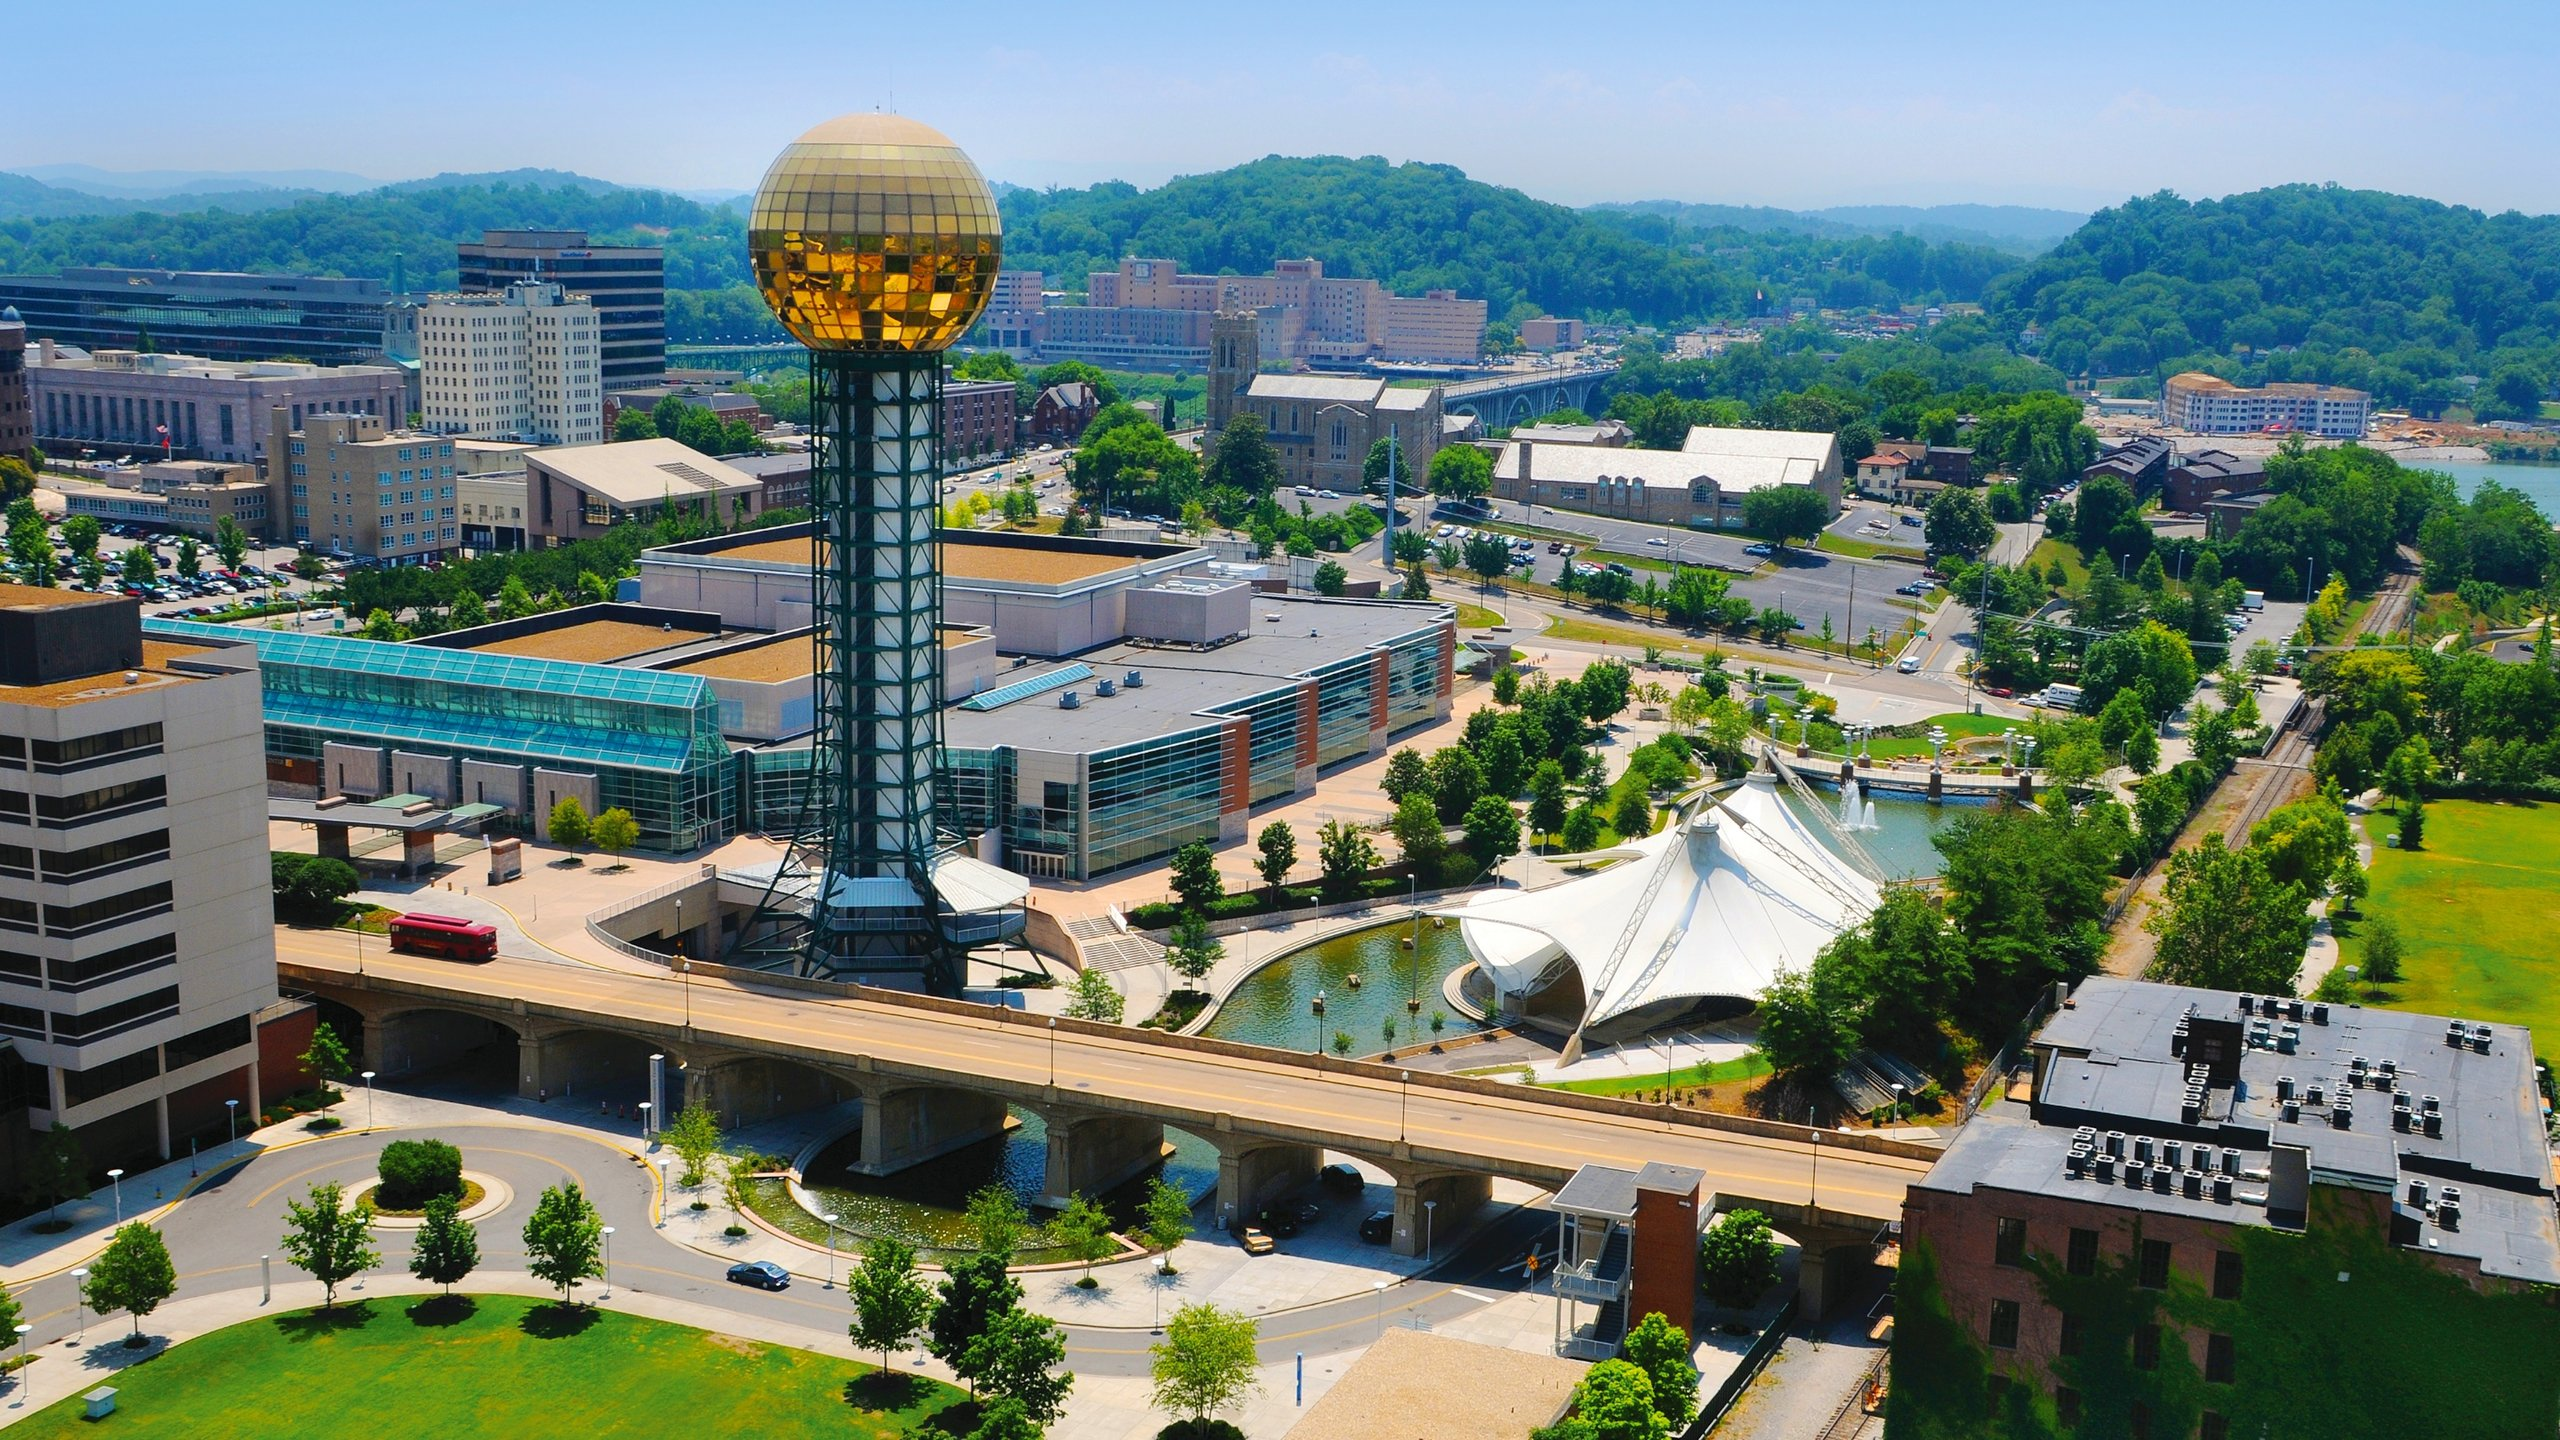 Knoxville, Tennessee, United States of America